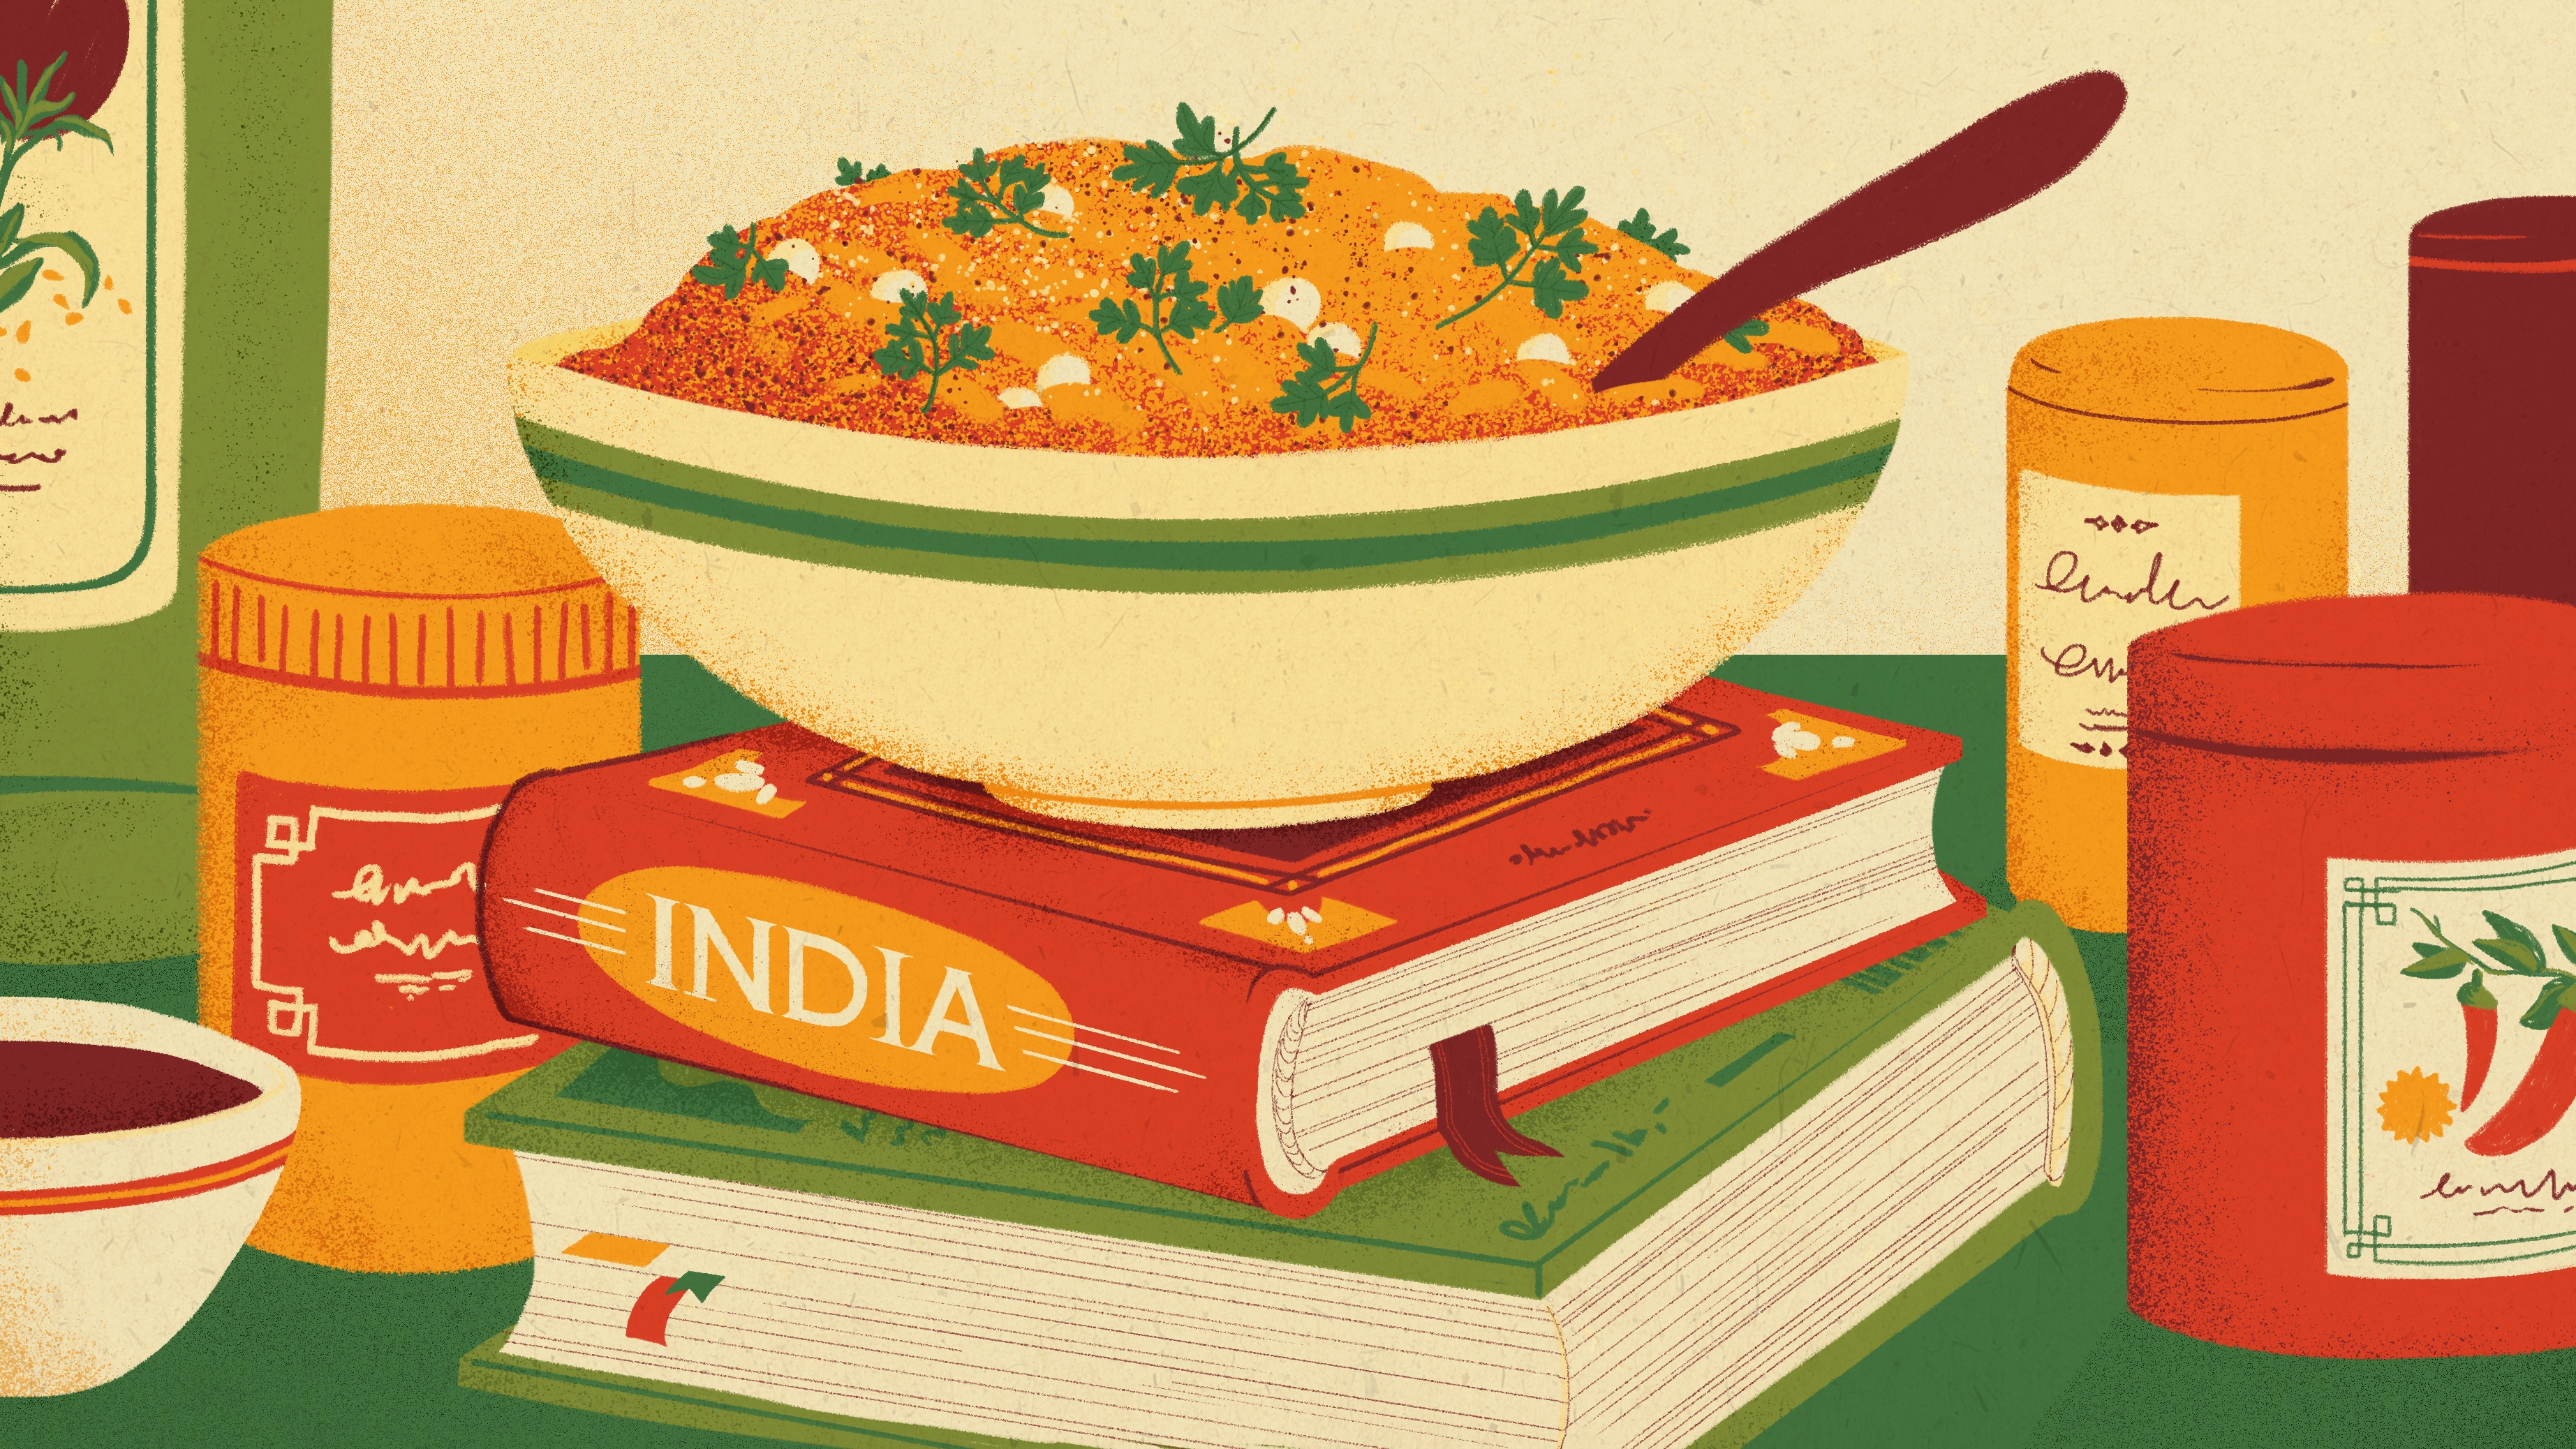 The 10 Best Cookbooks for Traditional Indian Food